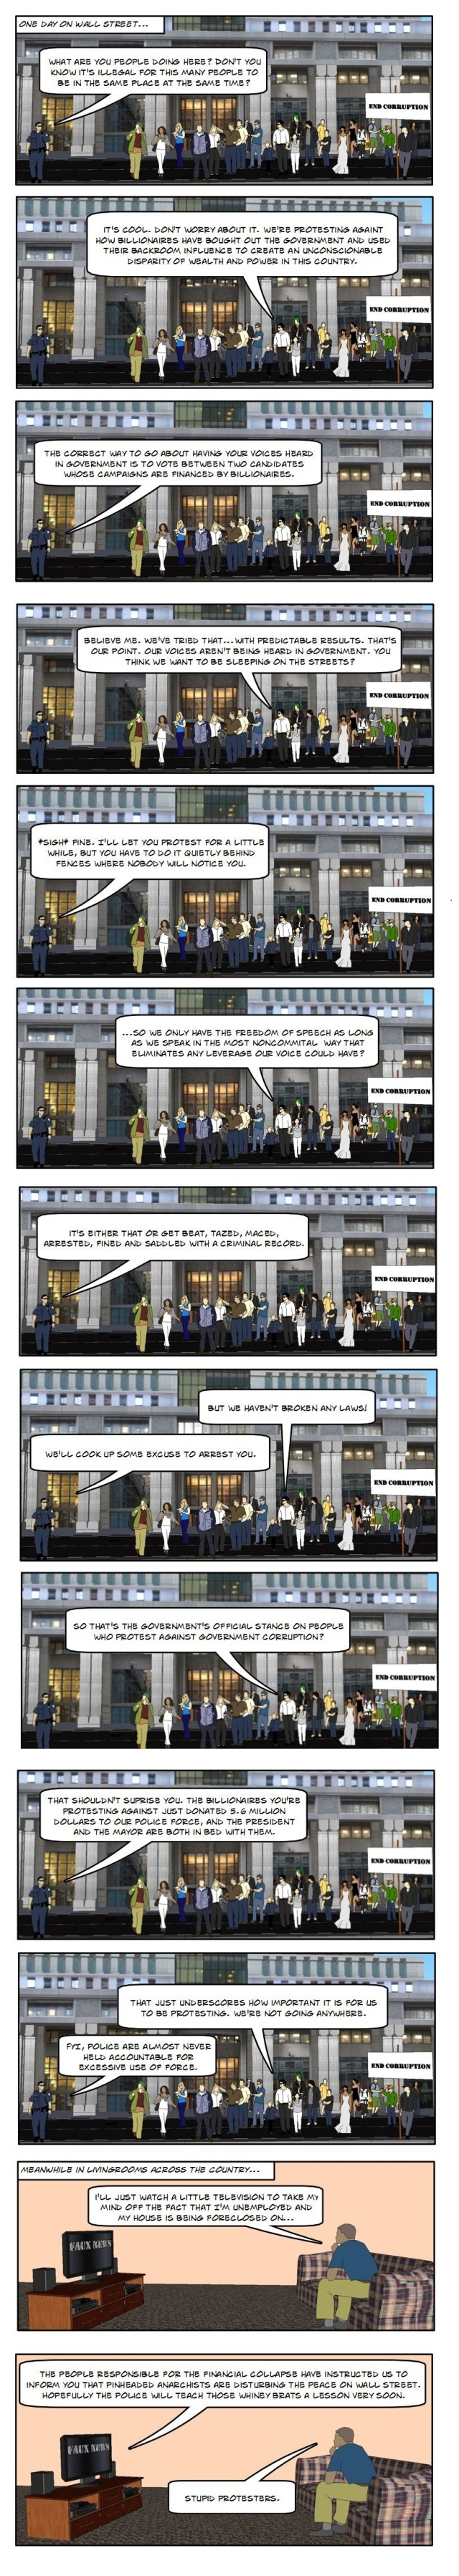 (Comic) How Civilians Protesting Works